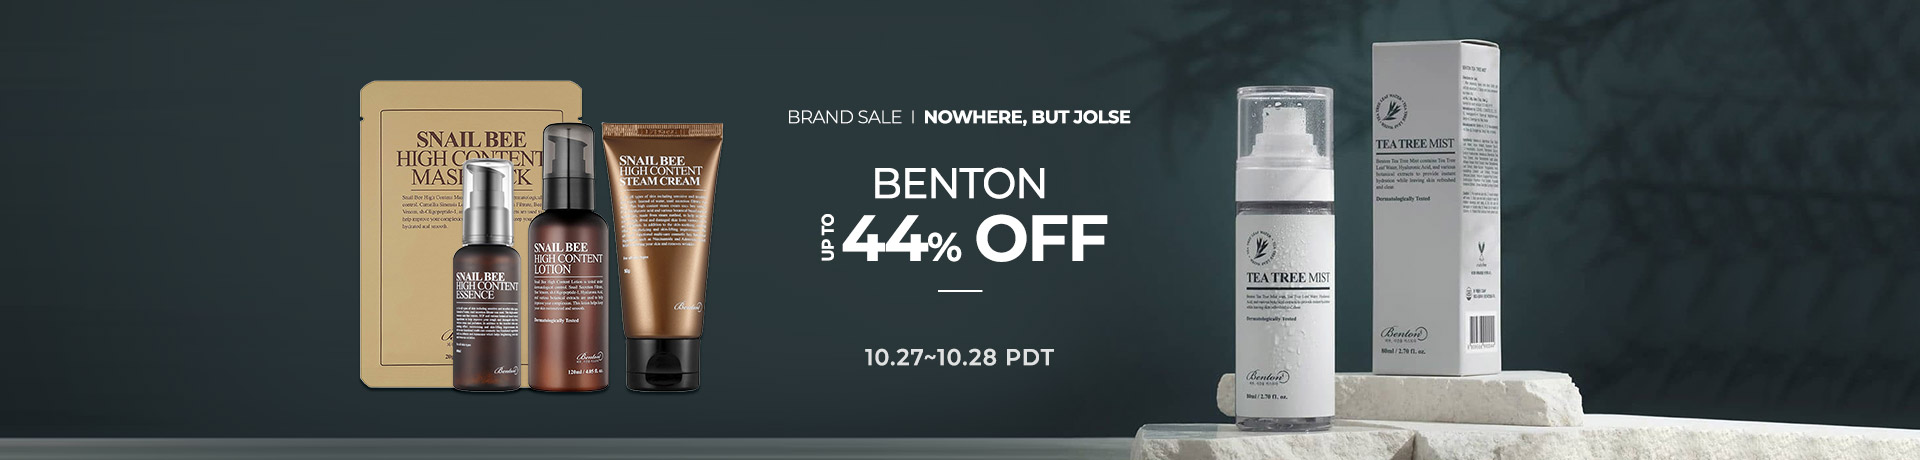 BENTON Up to 44% OFF